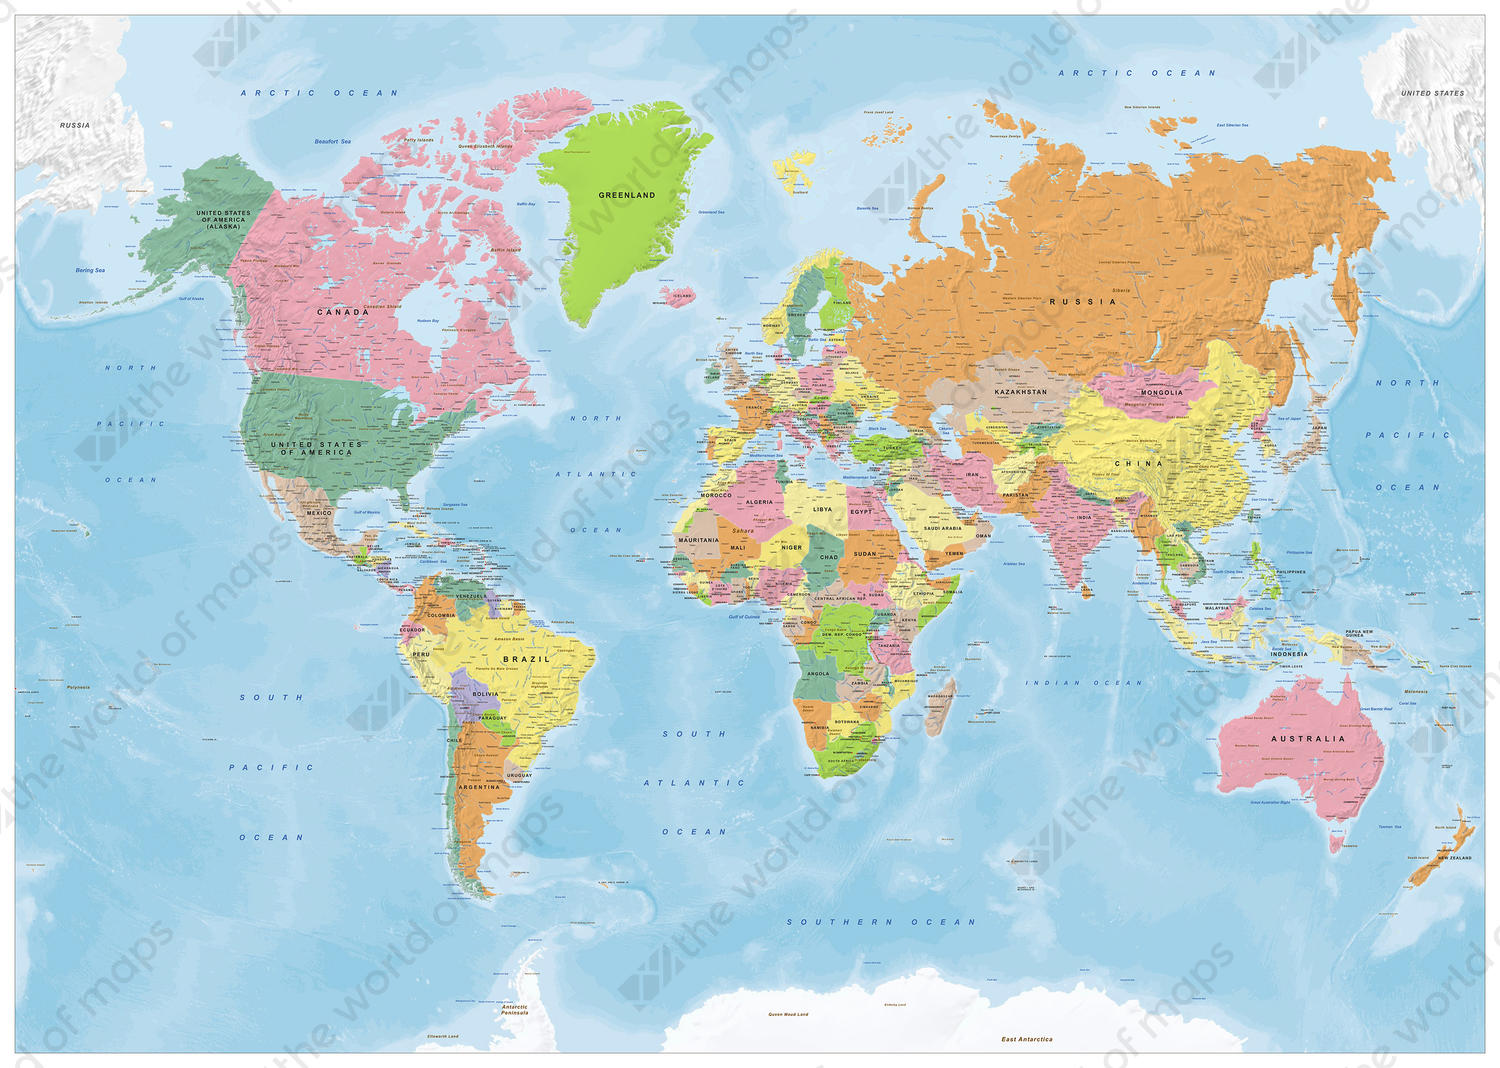 Vector World Map Political 1419 | The World of Maps.com